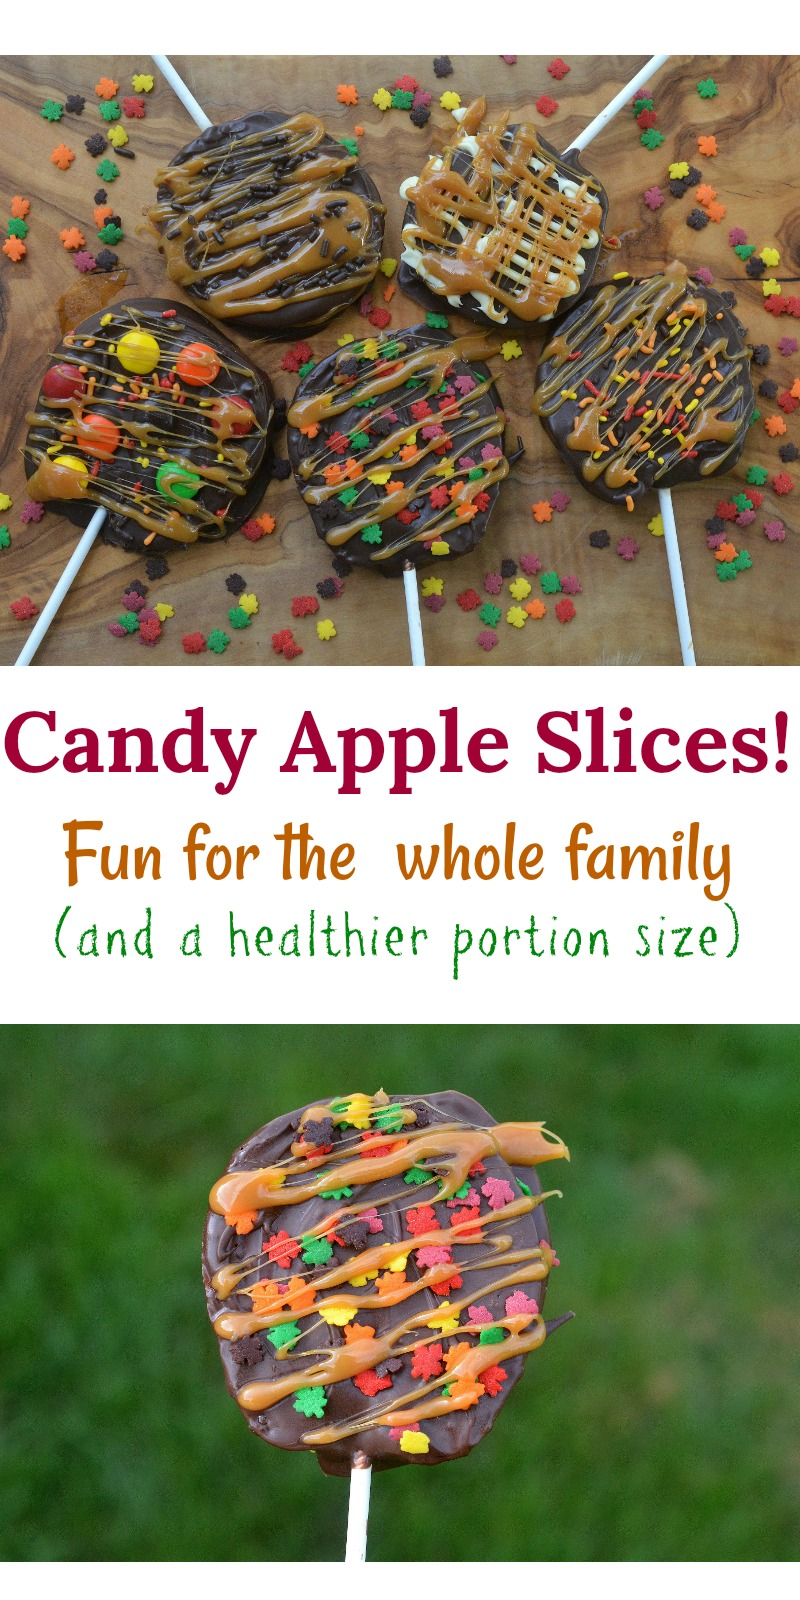 Candy Apple Slices! Fun for the whole family to make...easy too and a healthier portion size!